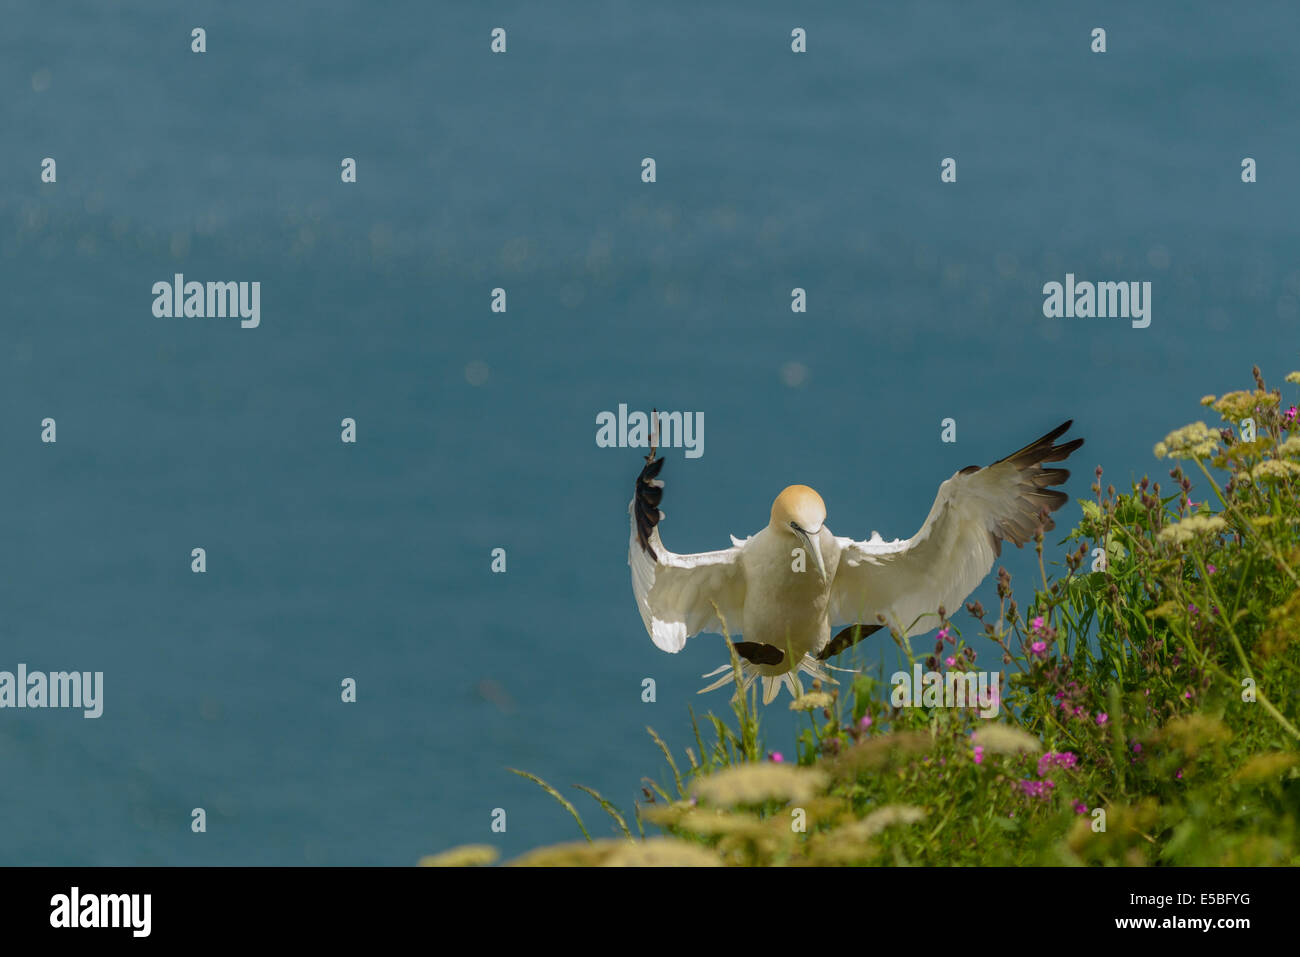 A northern gannet (Morus bassanus; Sula bassana) landing at its nest site on a cliff face; UK. - Stock Image